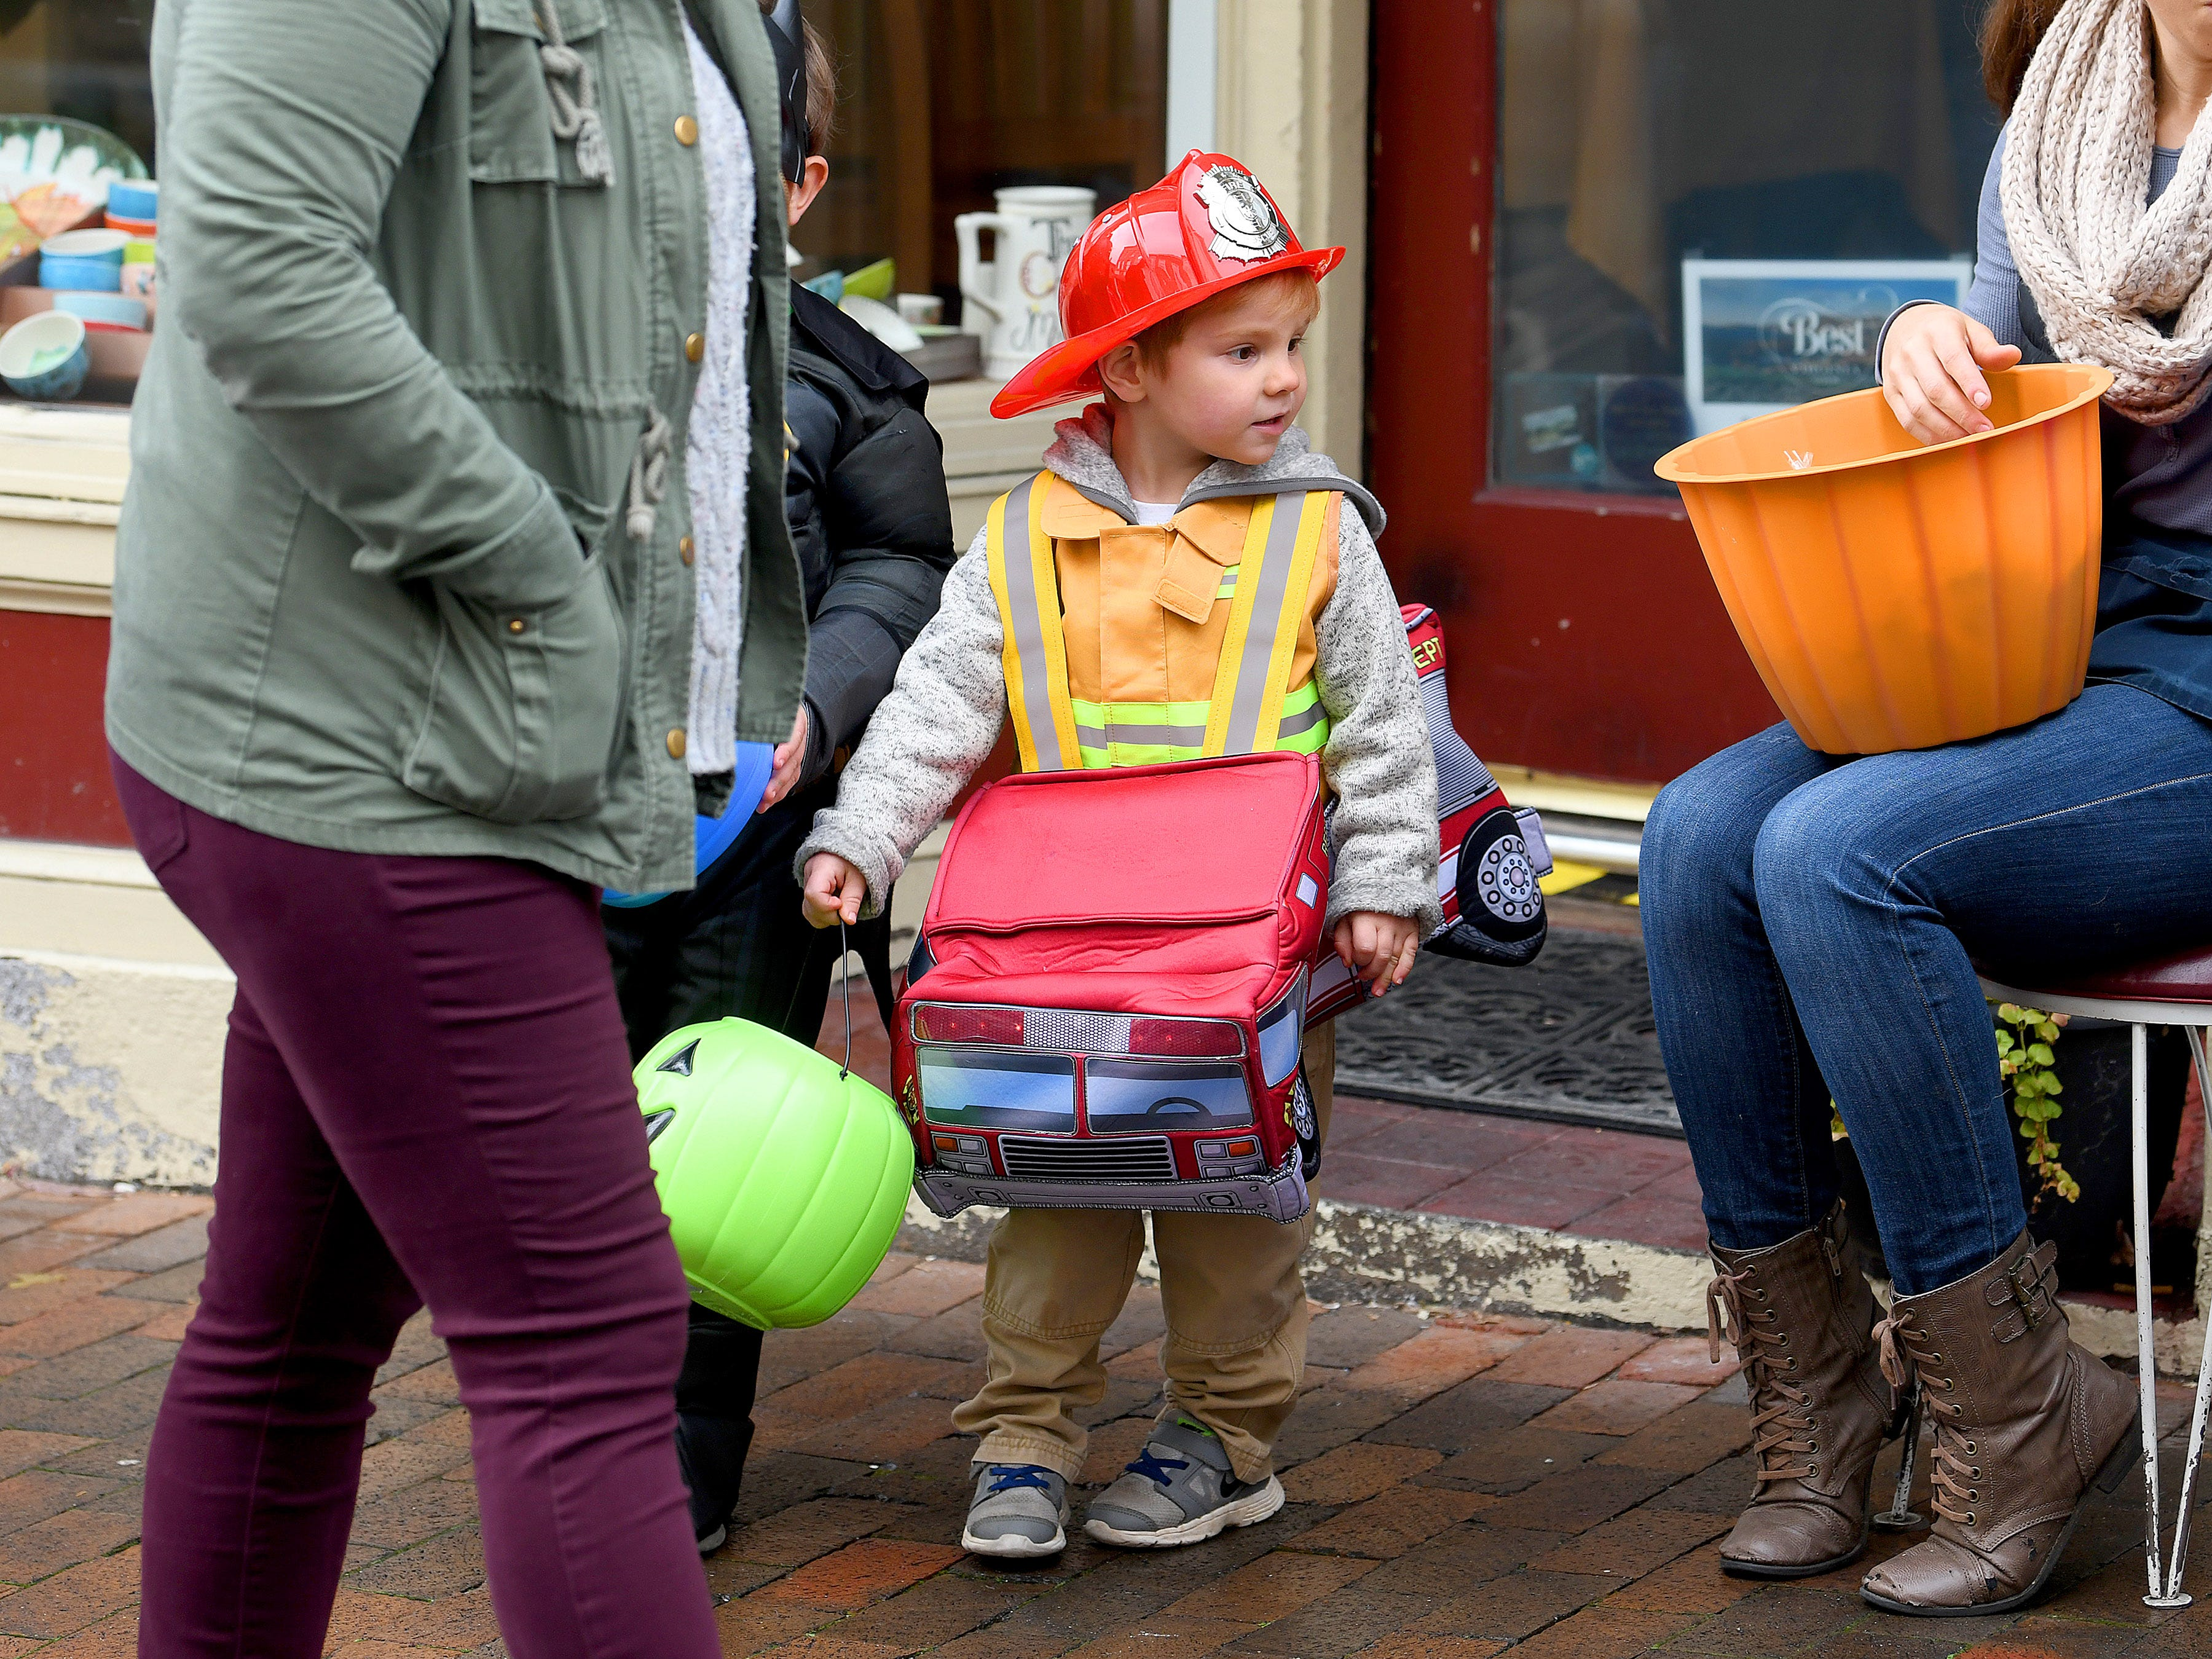 A firefighter trick-or-treats in downtown Staunton on Saturday, Oct. 27, 2018.